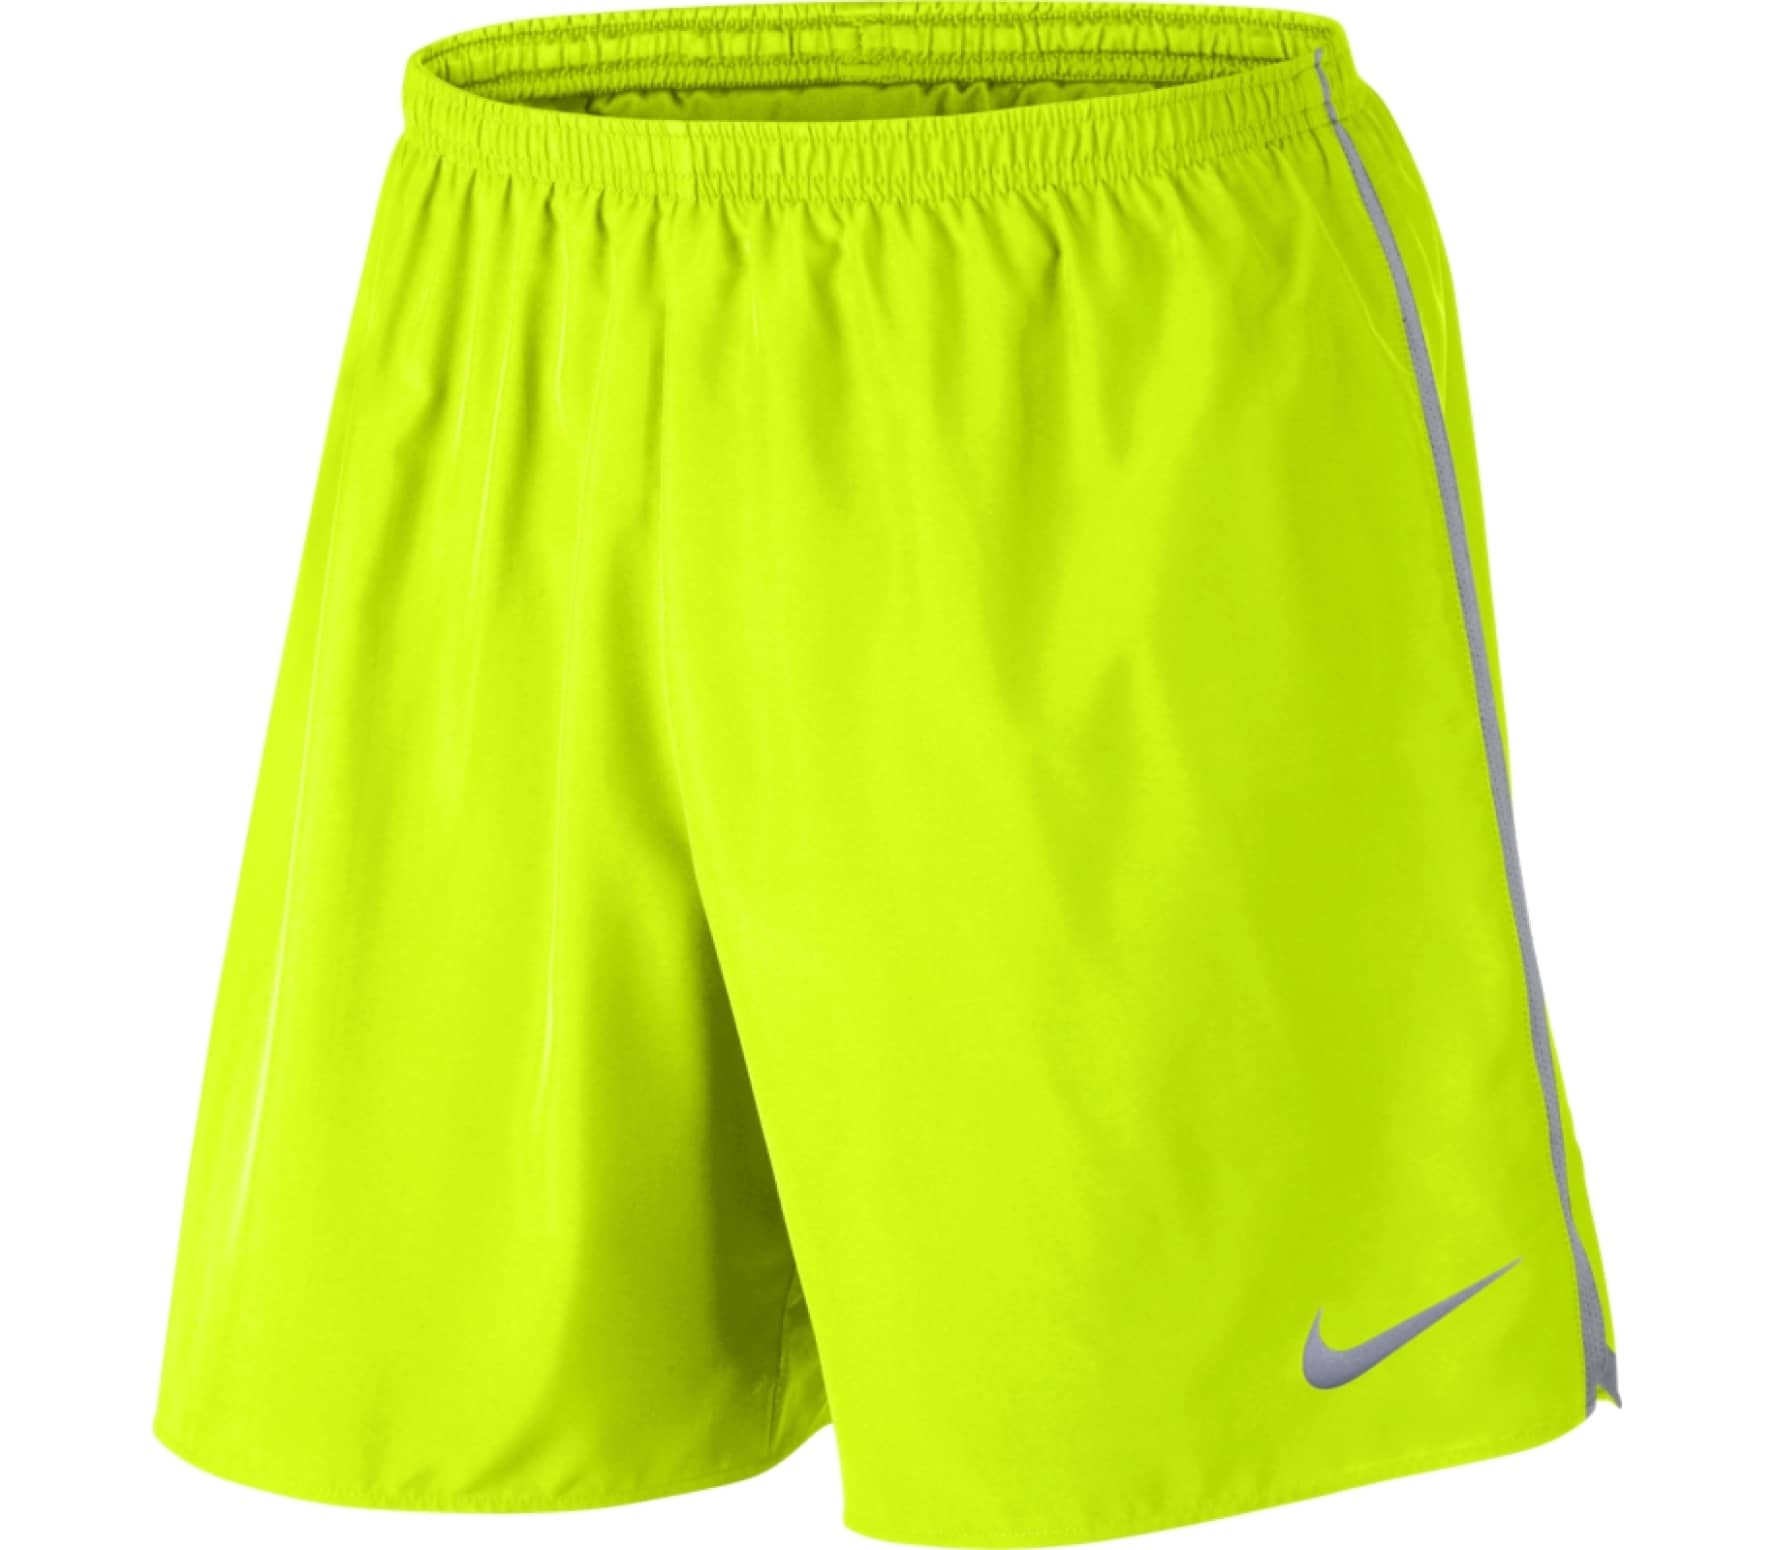 fecf3ede5c Nike - Dry men's running shorts (neon yellow) - buy it at the Keller ...